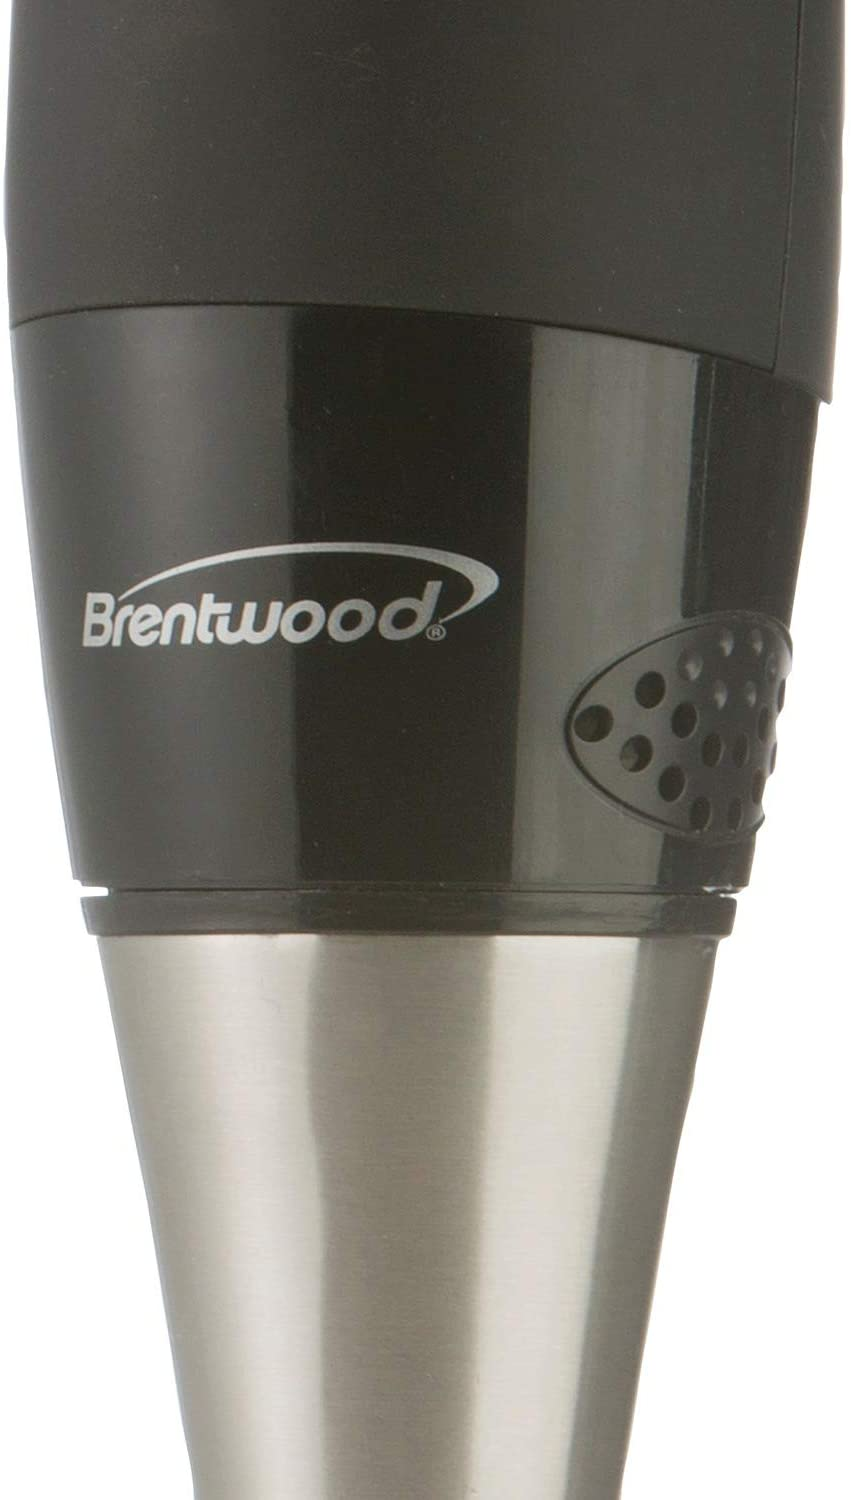 Brentwood Hand Blender 2-Speed 200W, 1, Black